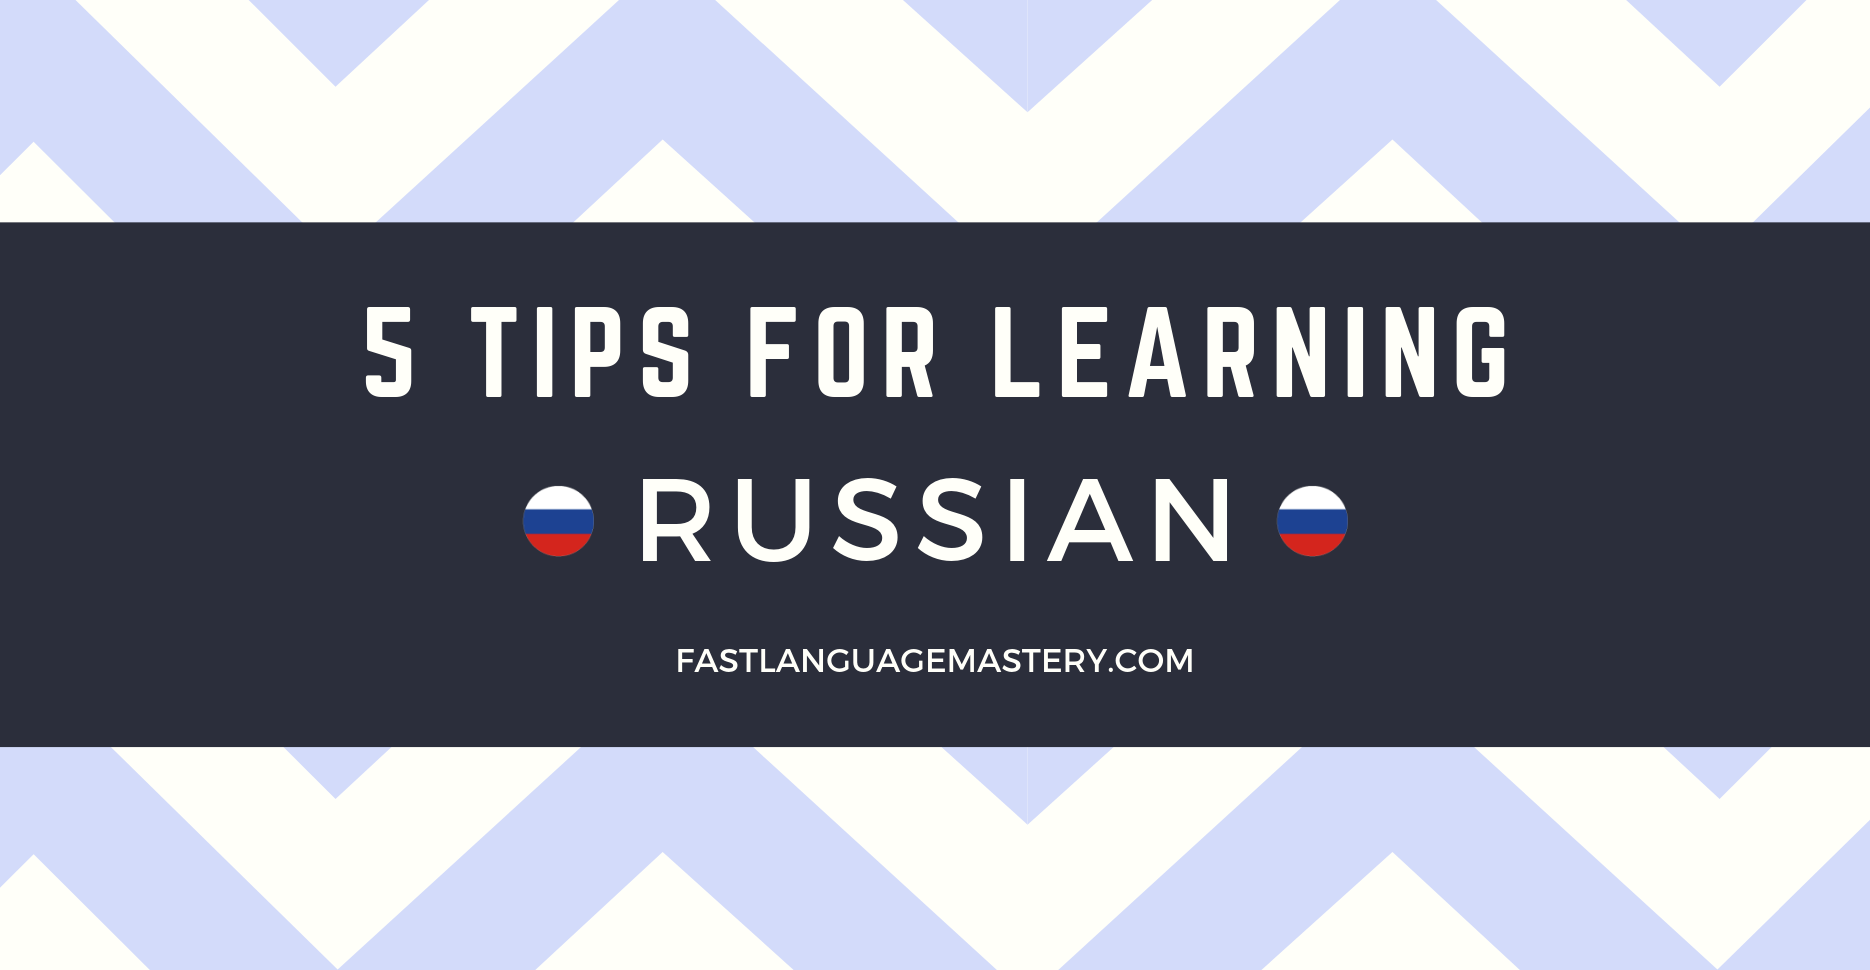 5 tips for learning Russian